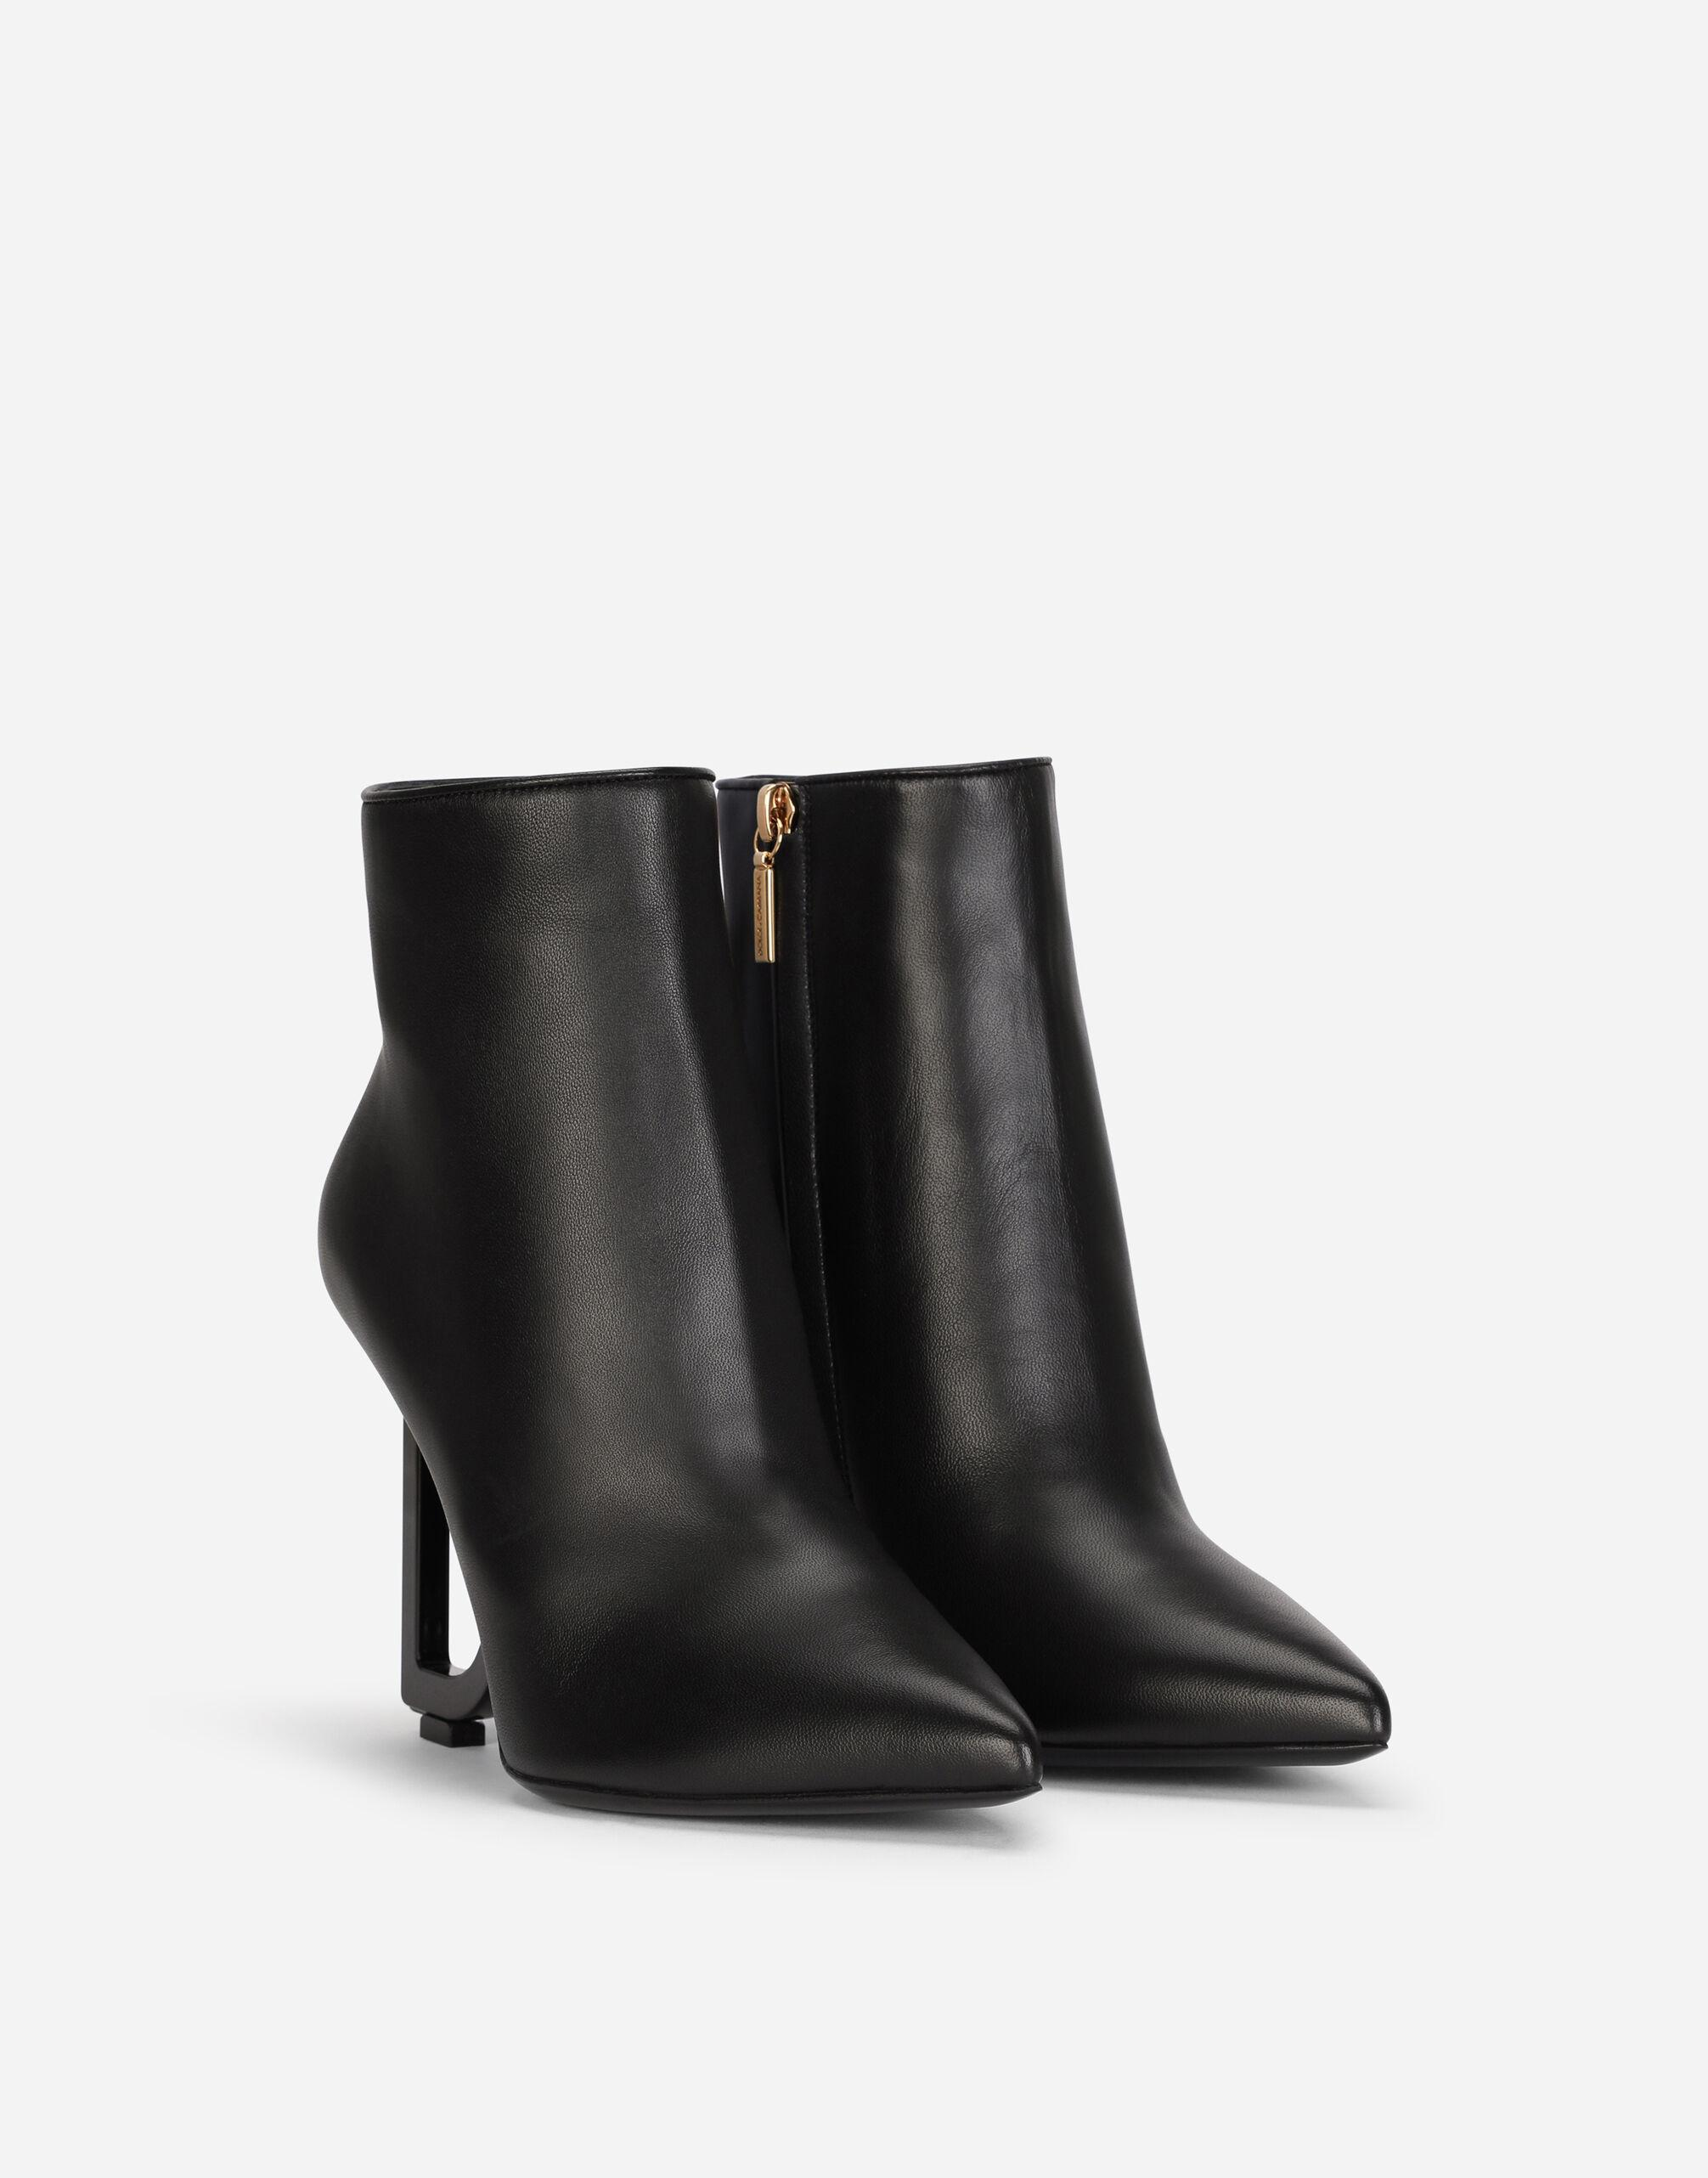 Nappa leather ankle boots with DG heel 1